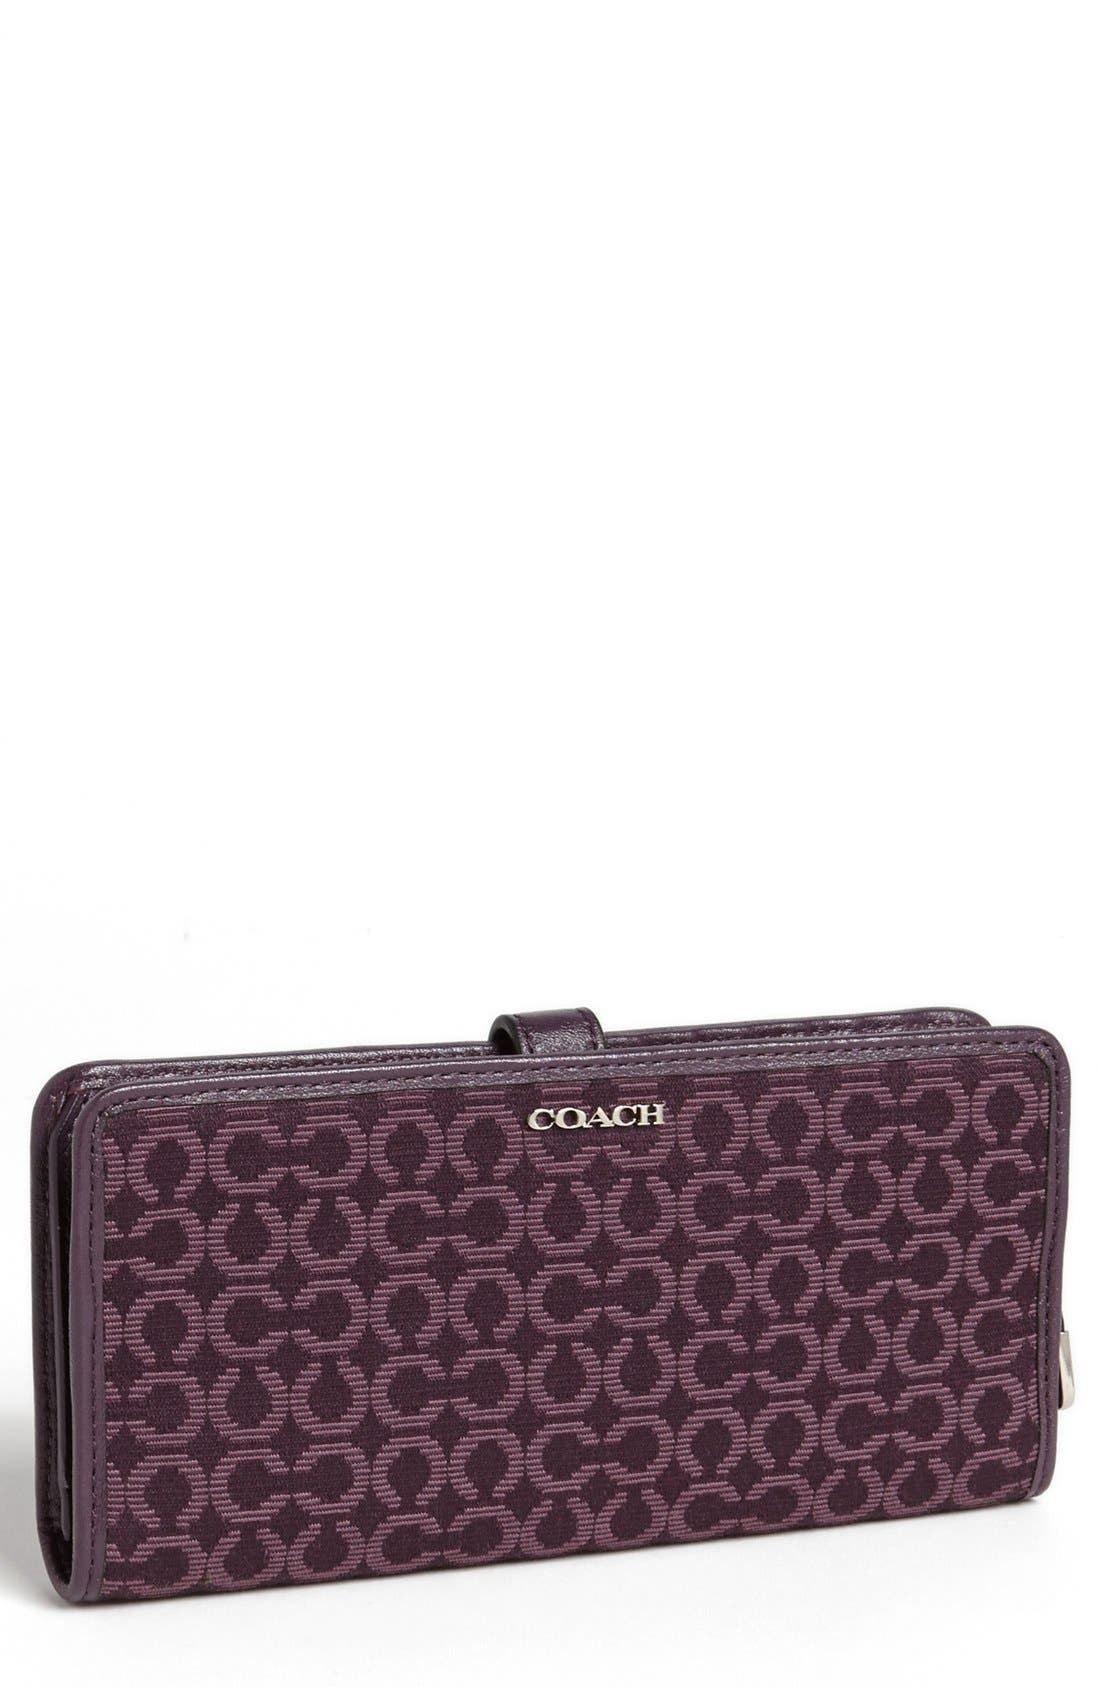 Main Image - COACH 'Madison - Skinny' Wallet